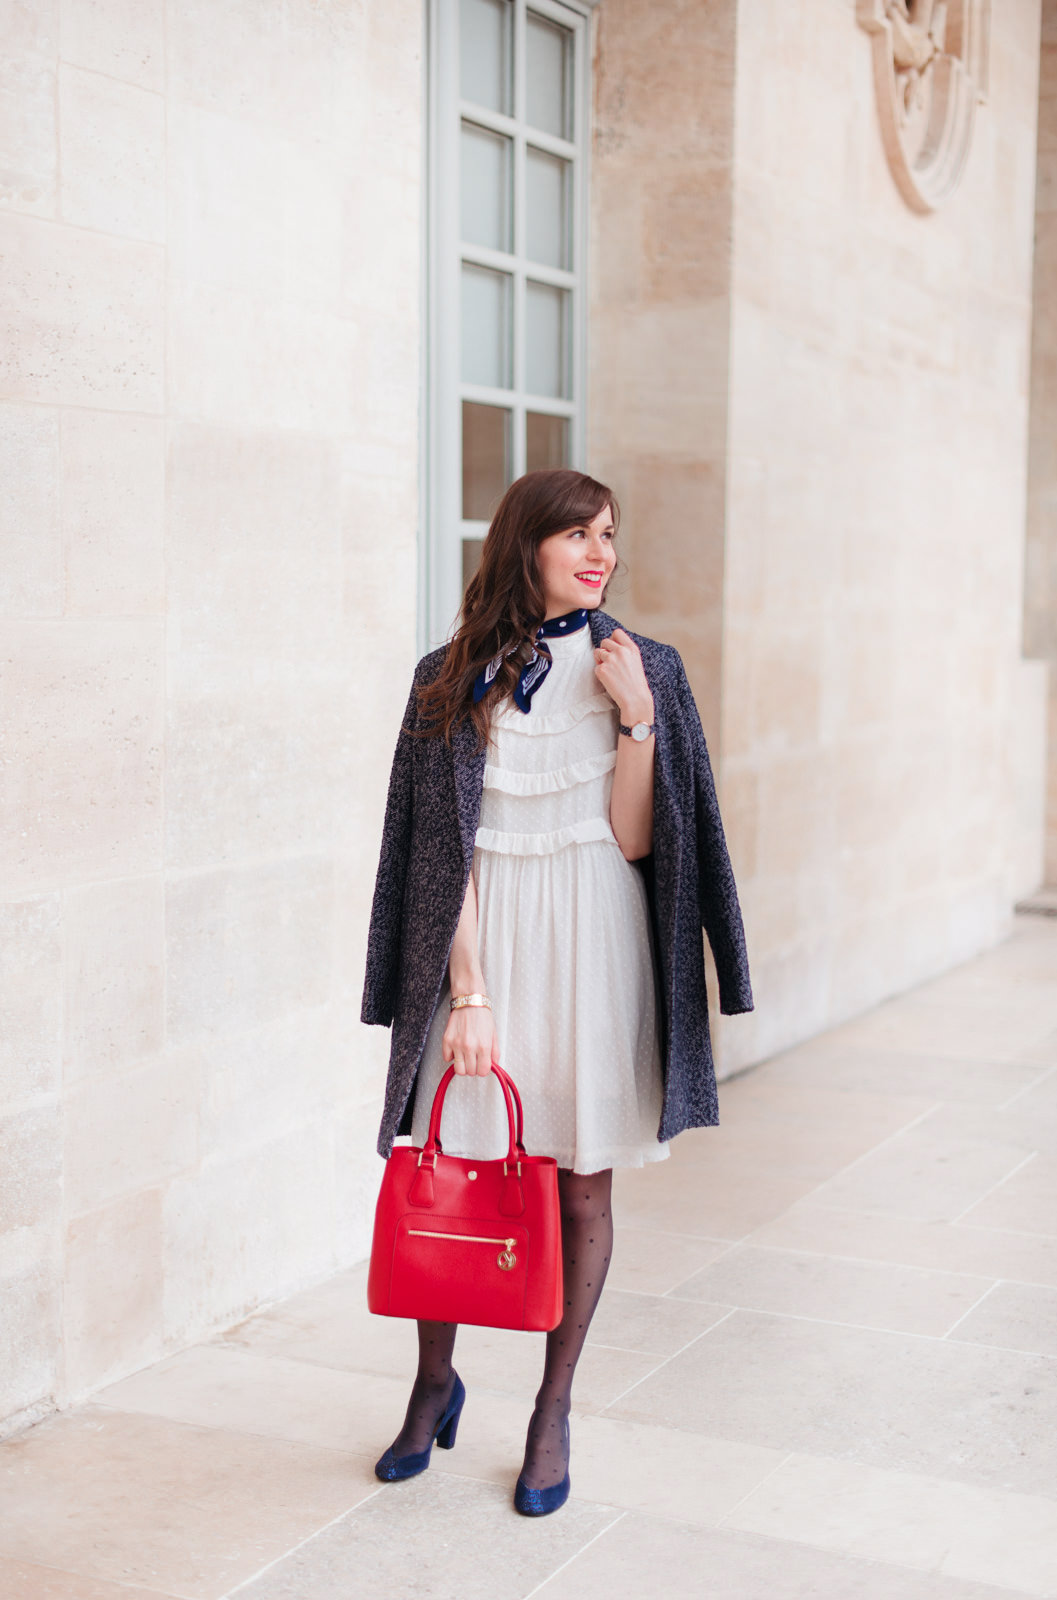 Blog-Mode-And-The-City-Lifestyle-Cinq-Petites-Choses-La-Note-Francaise-2